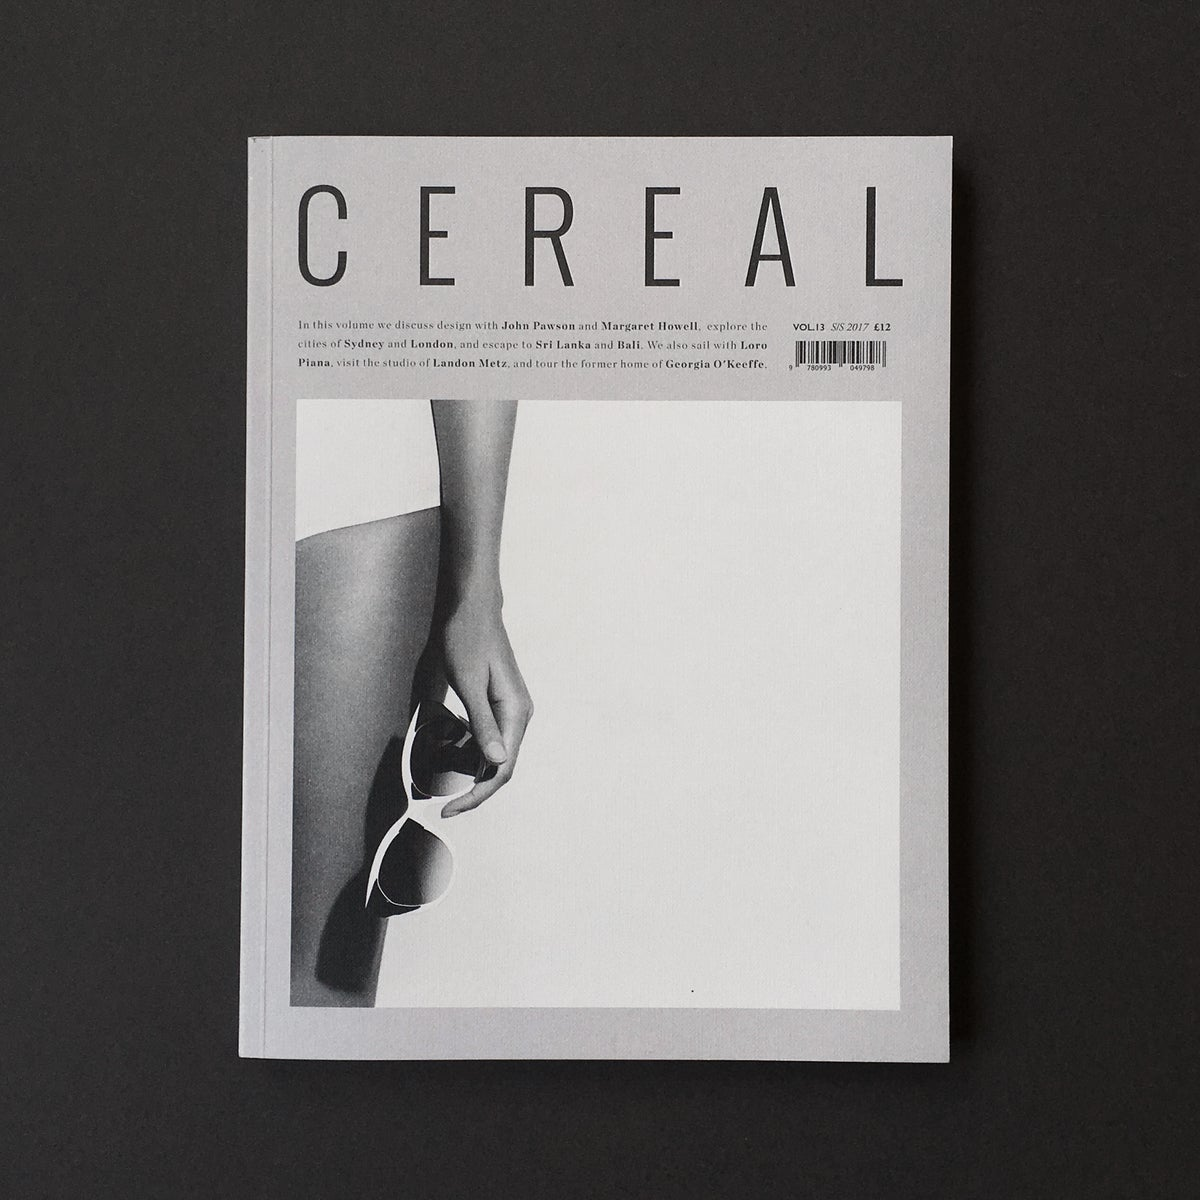 Image of 'Cereal' Magazine